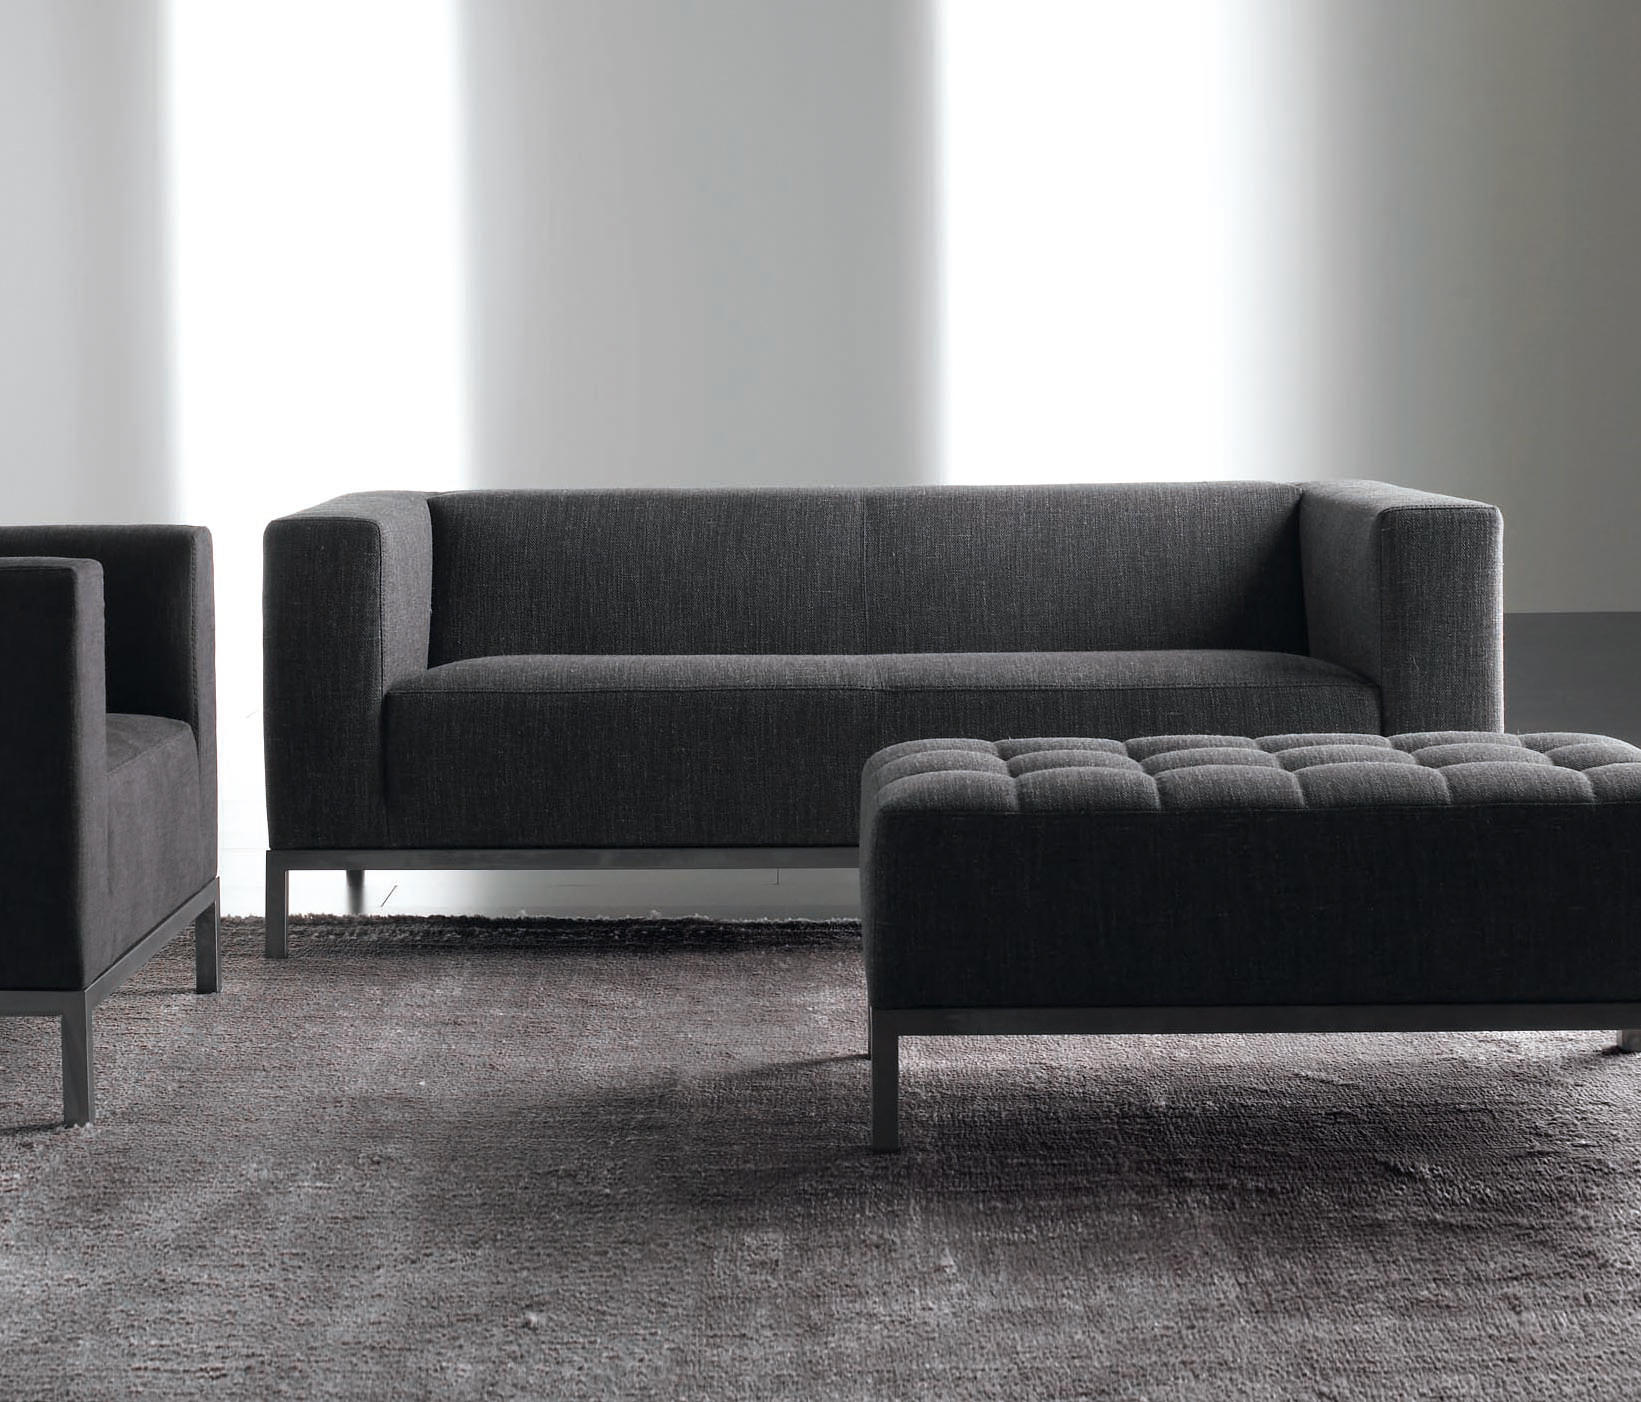 farrell sofa lounge sofas from meridiani architonic. Black Bedroom Furniture Sets. Home Design Ideas